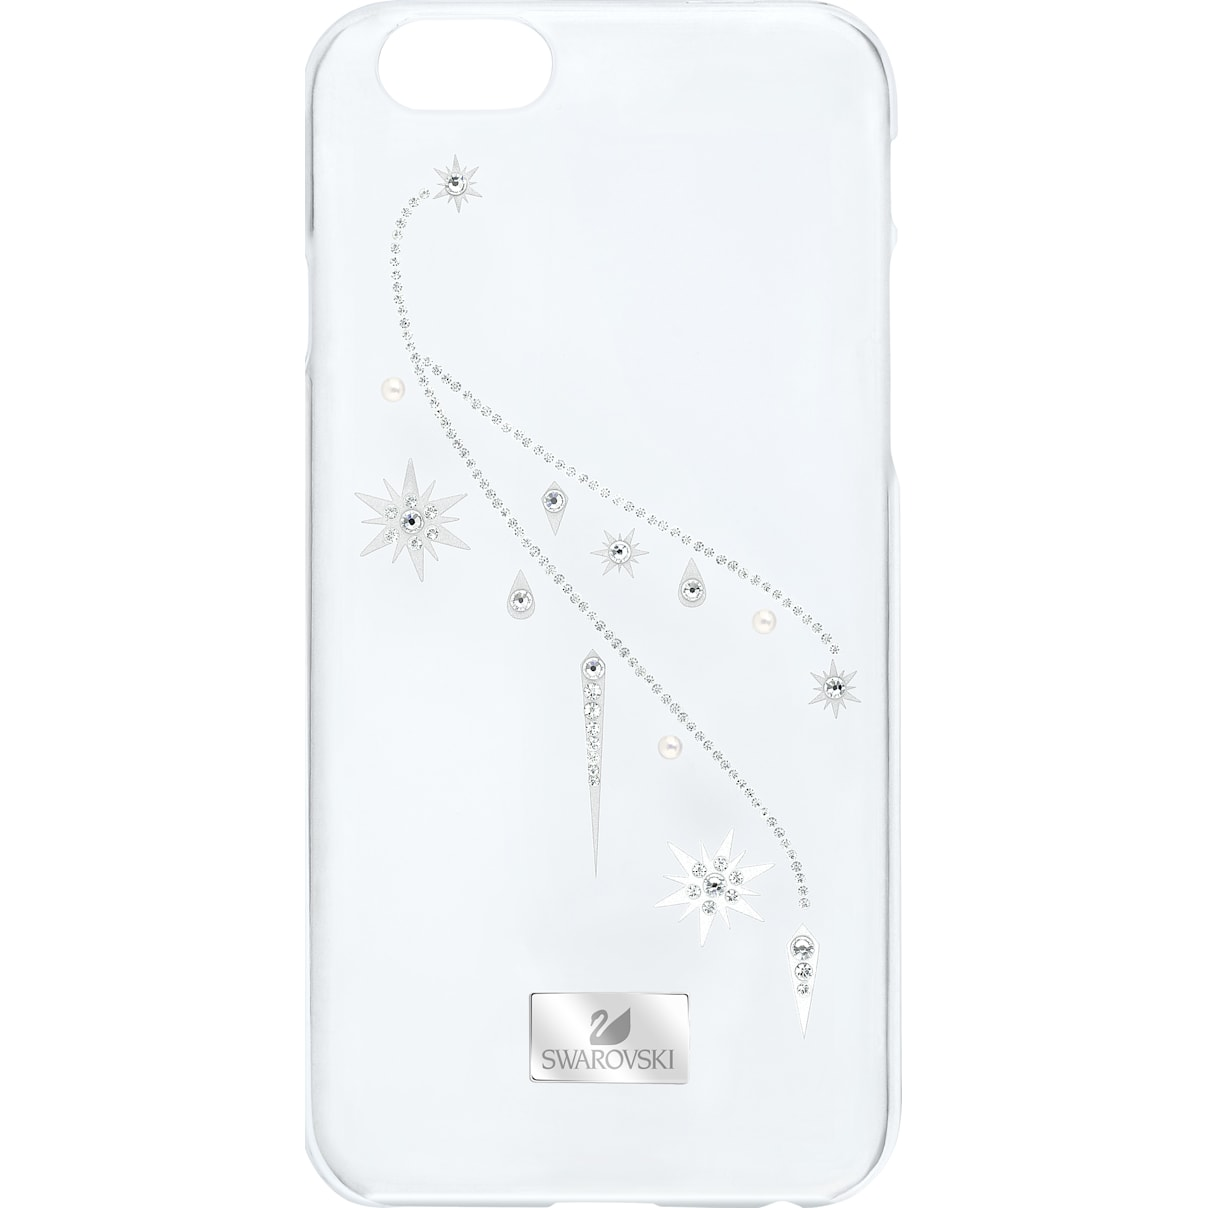 Swarovski Fantastic Smartphone Case, iPhone® 7